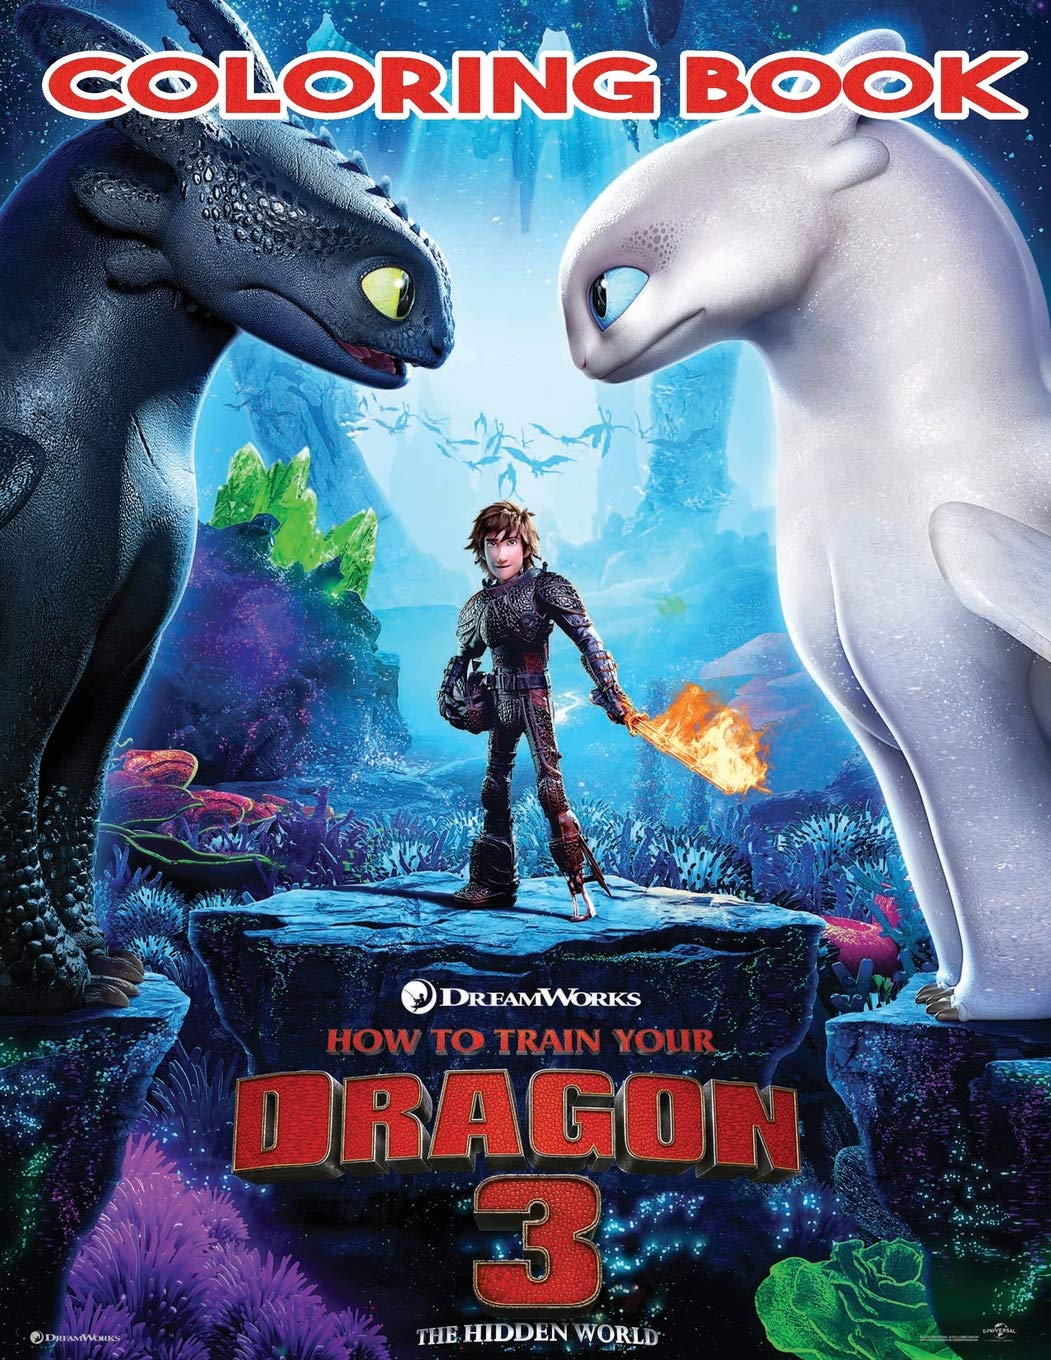 - Amazon.com: How To Train Your Dragon 3 Coloring Book: Includes All